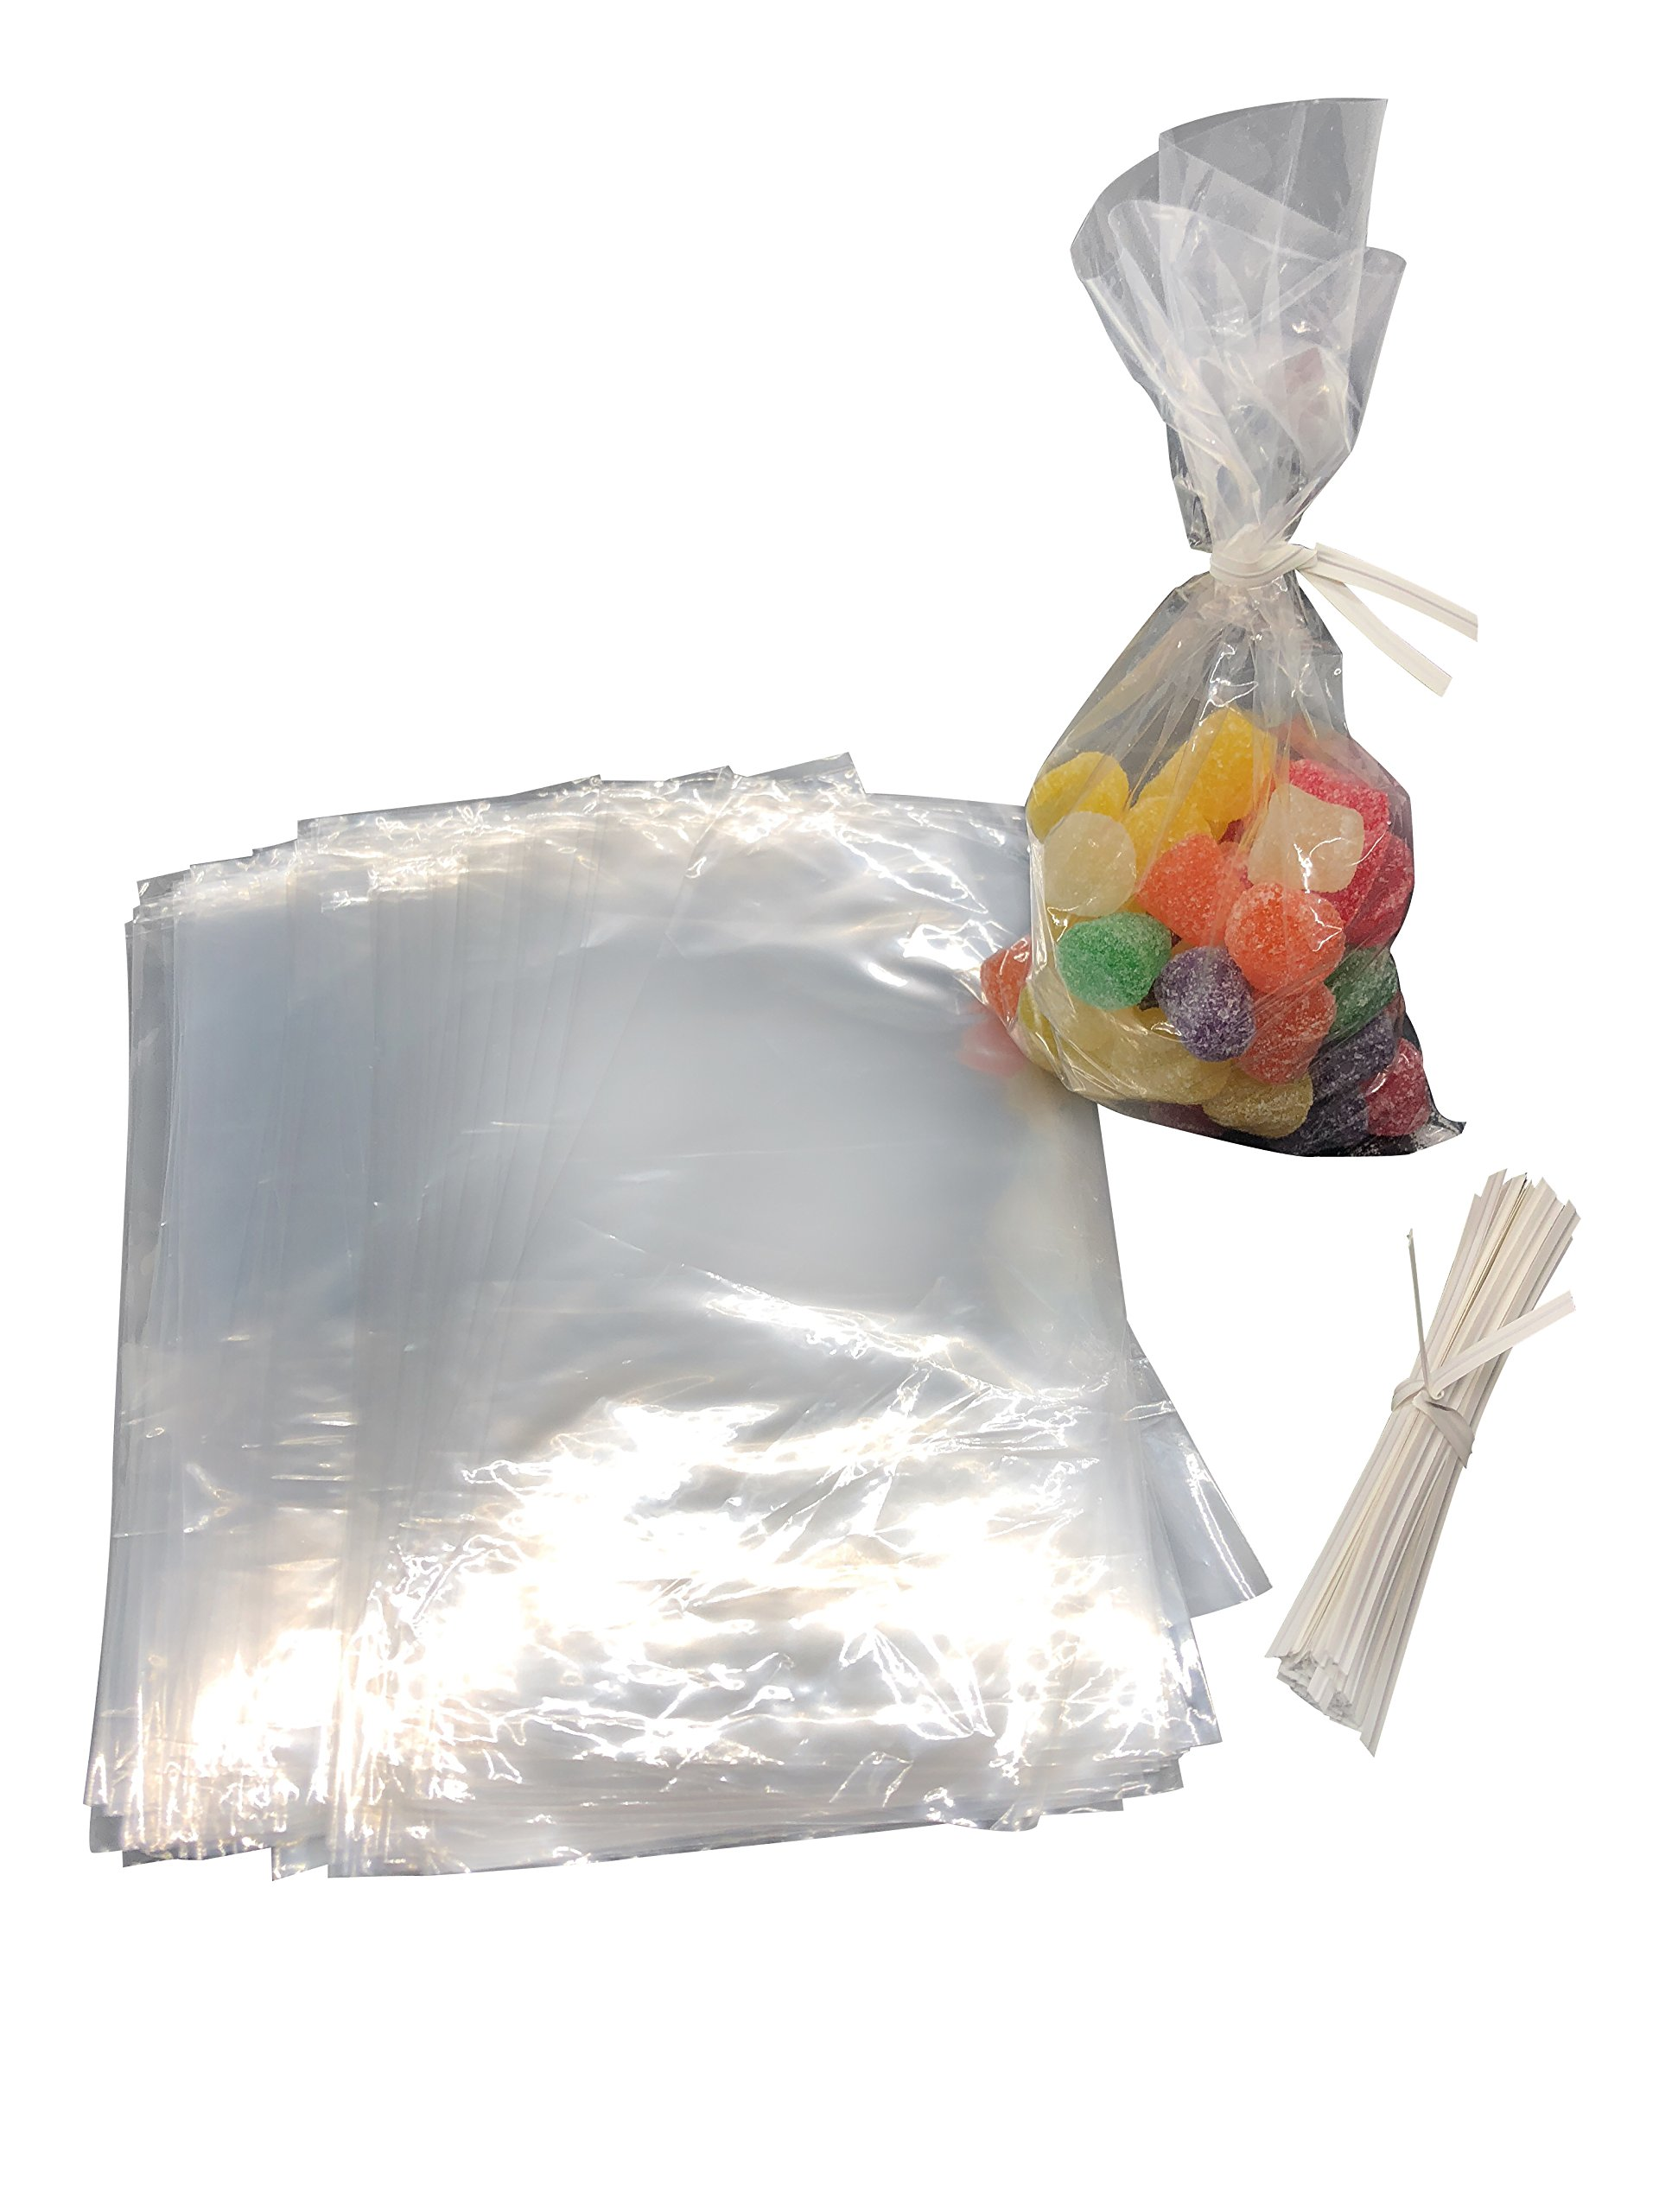 LoHiciste Candy Buffet Supplies: Set of Candy Buffet Scoops and Candy Buffet Bags with Twist Ties (6 Silver Scoops, 50 Clear Bags, Silver) by LoHiciste (Image #3)